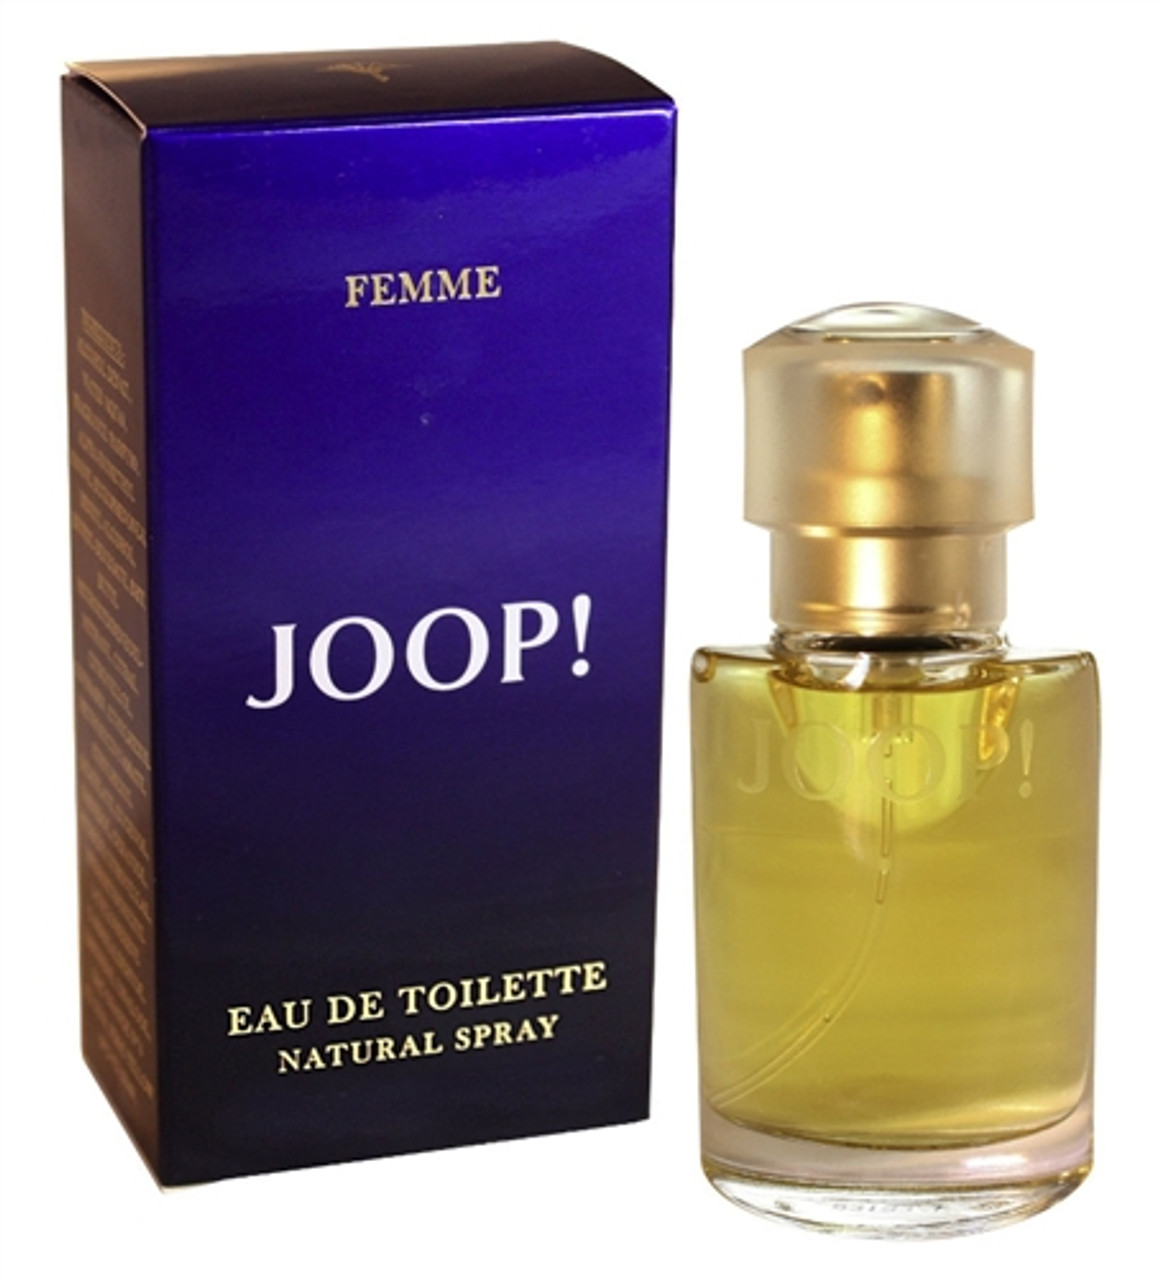 Femme Eau de Toilette for Women by Joop! - 3.4 OZ